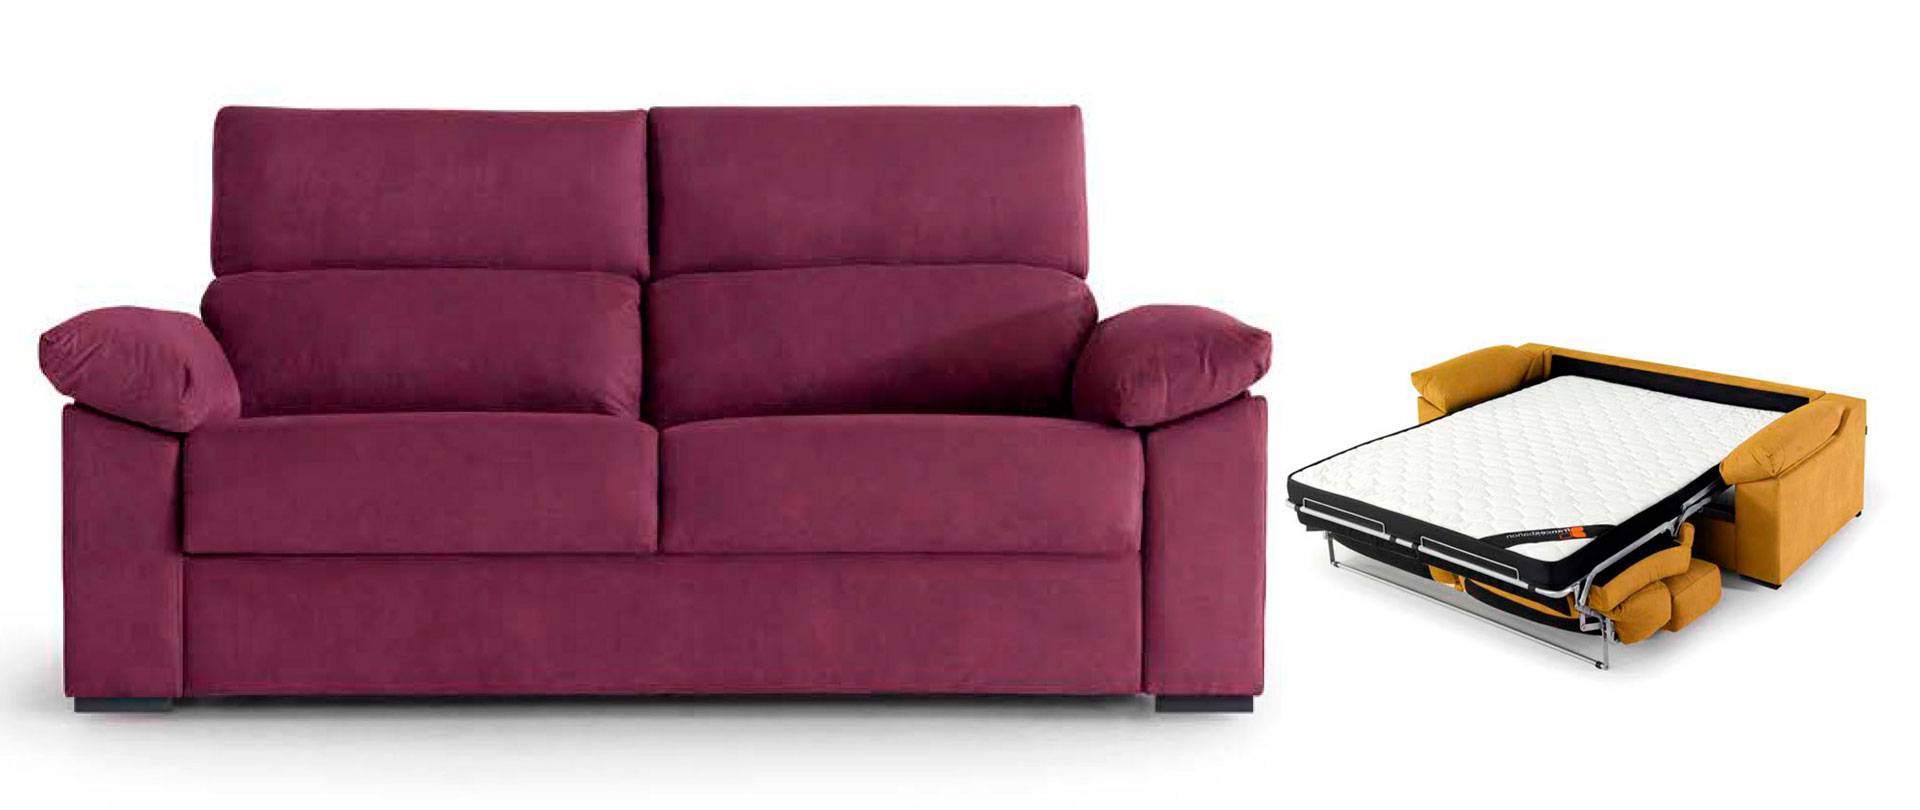 001 Slider Sofa Cama